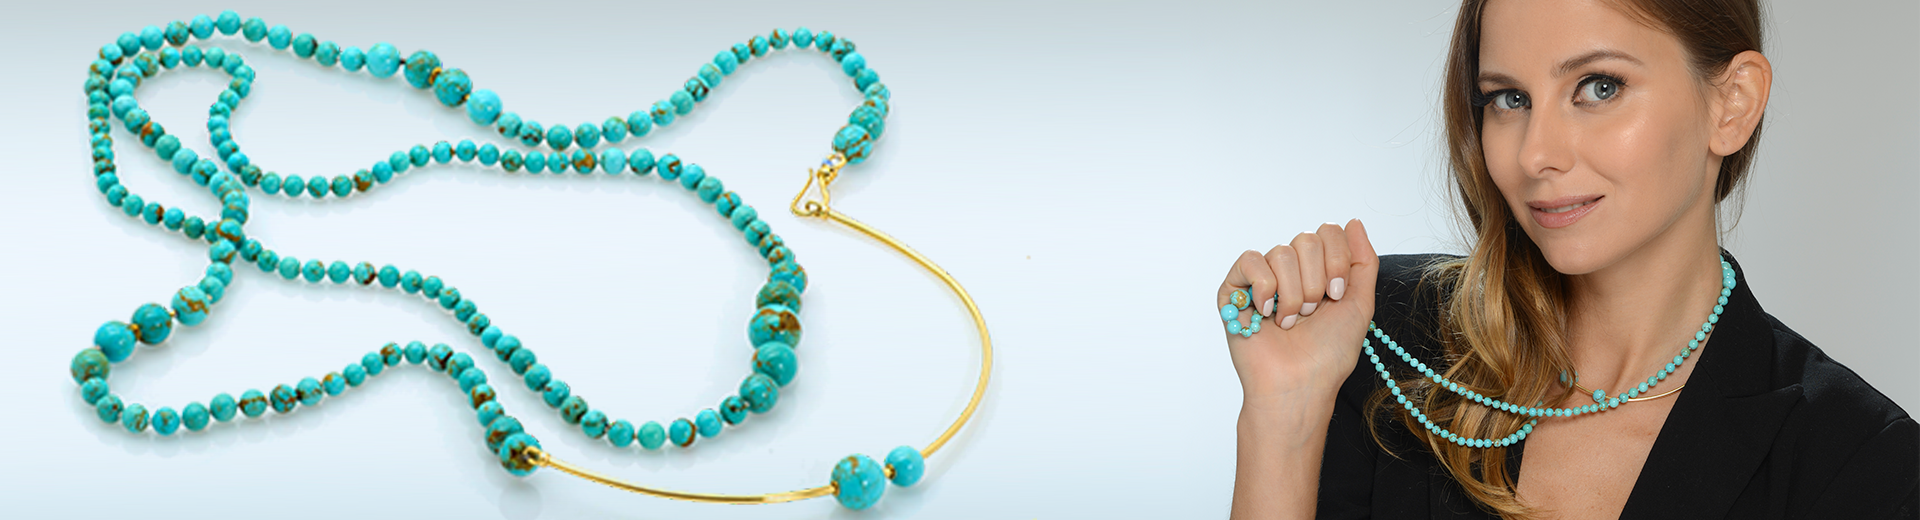 Ippolita's Most Coveted Turquoise Jewelry